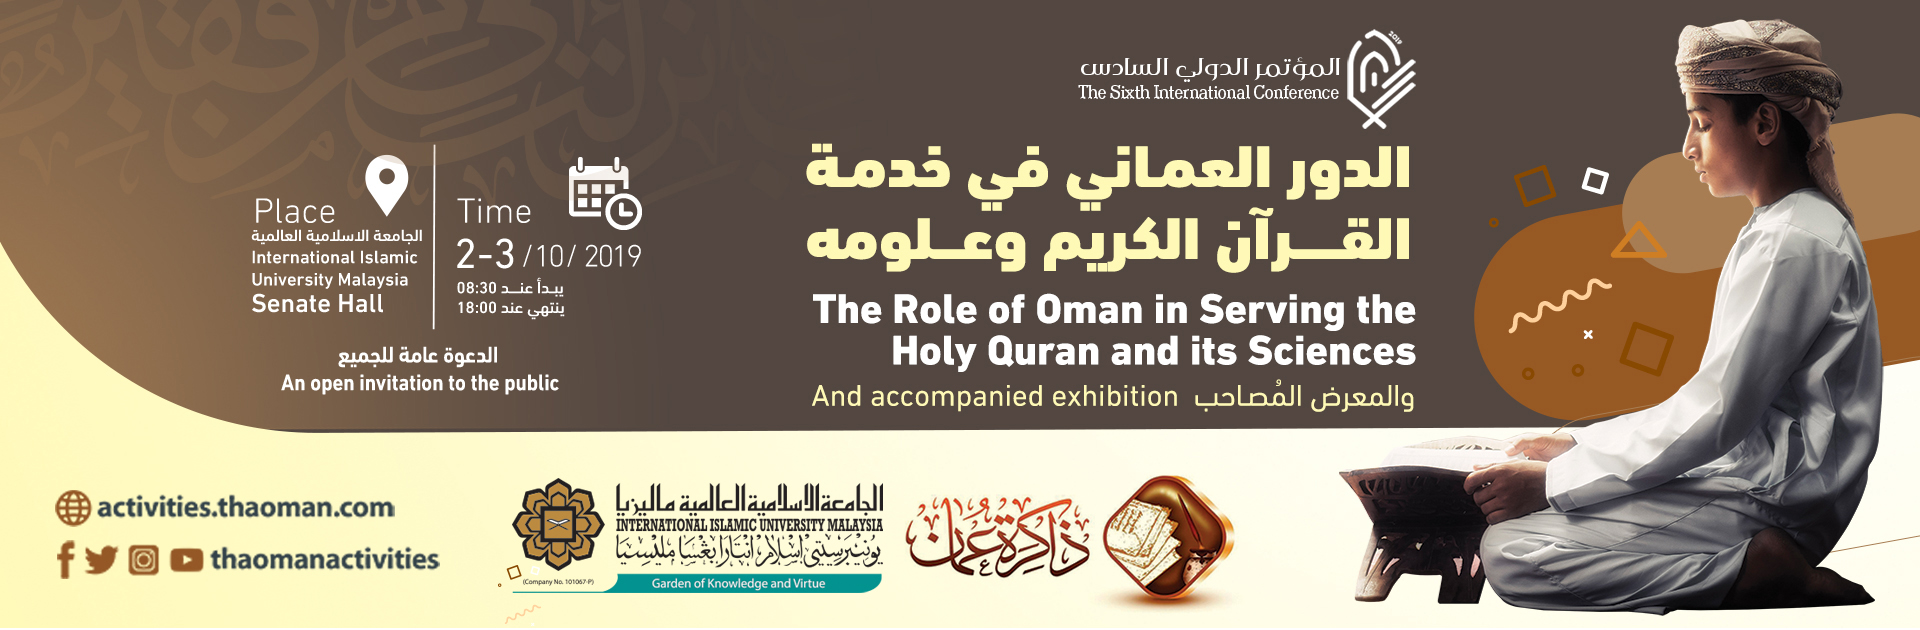 The Role of Oman in Serving the Holy Quran and its sciences